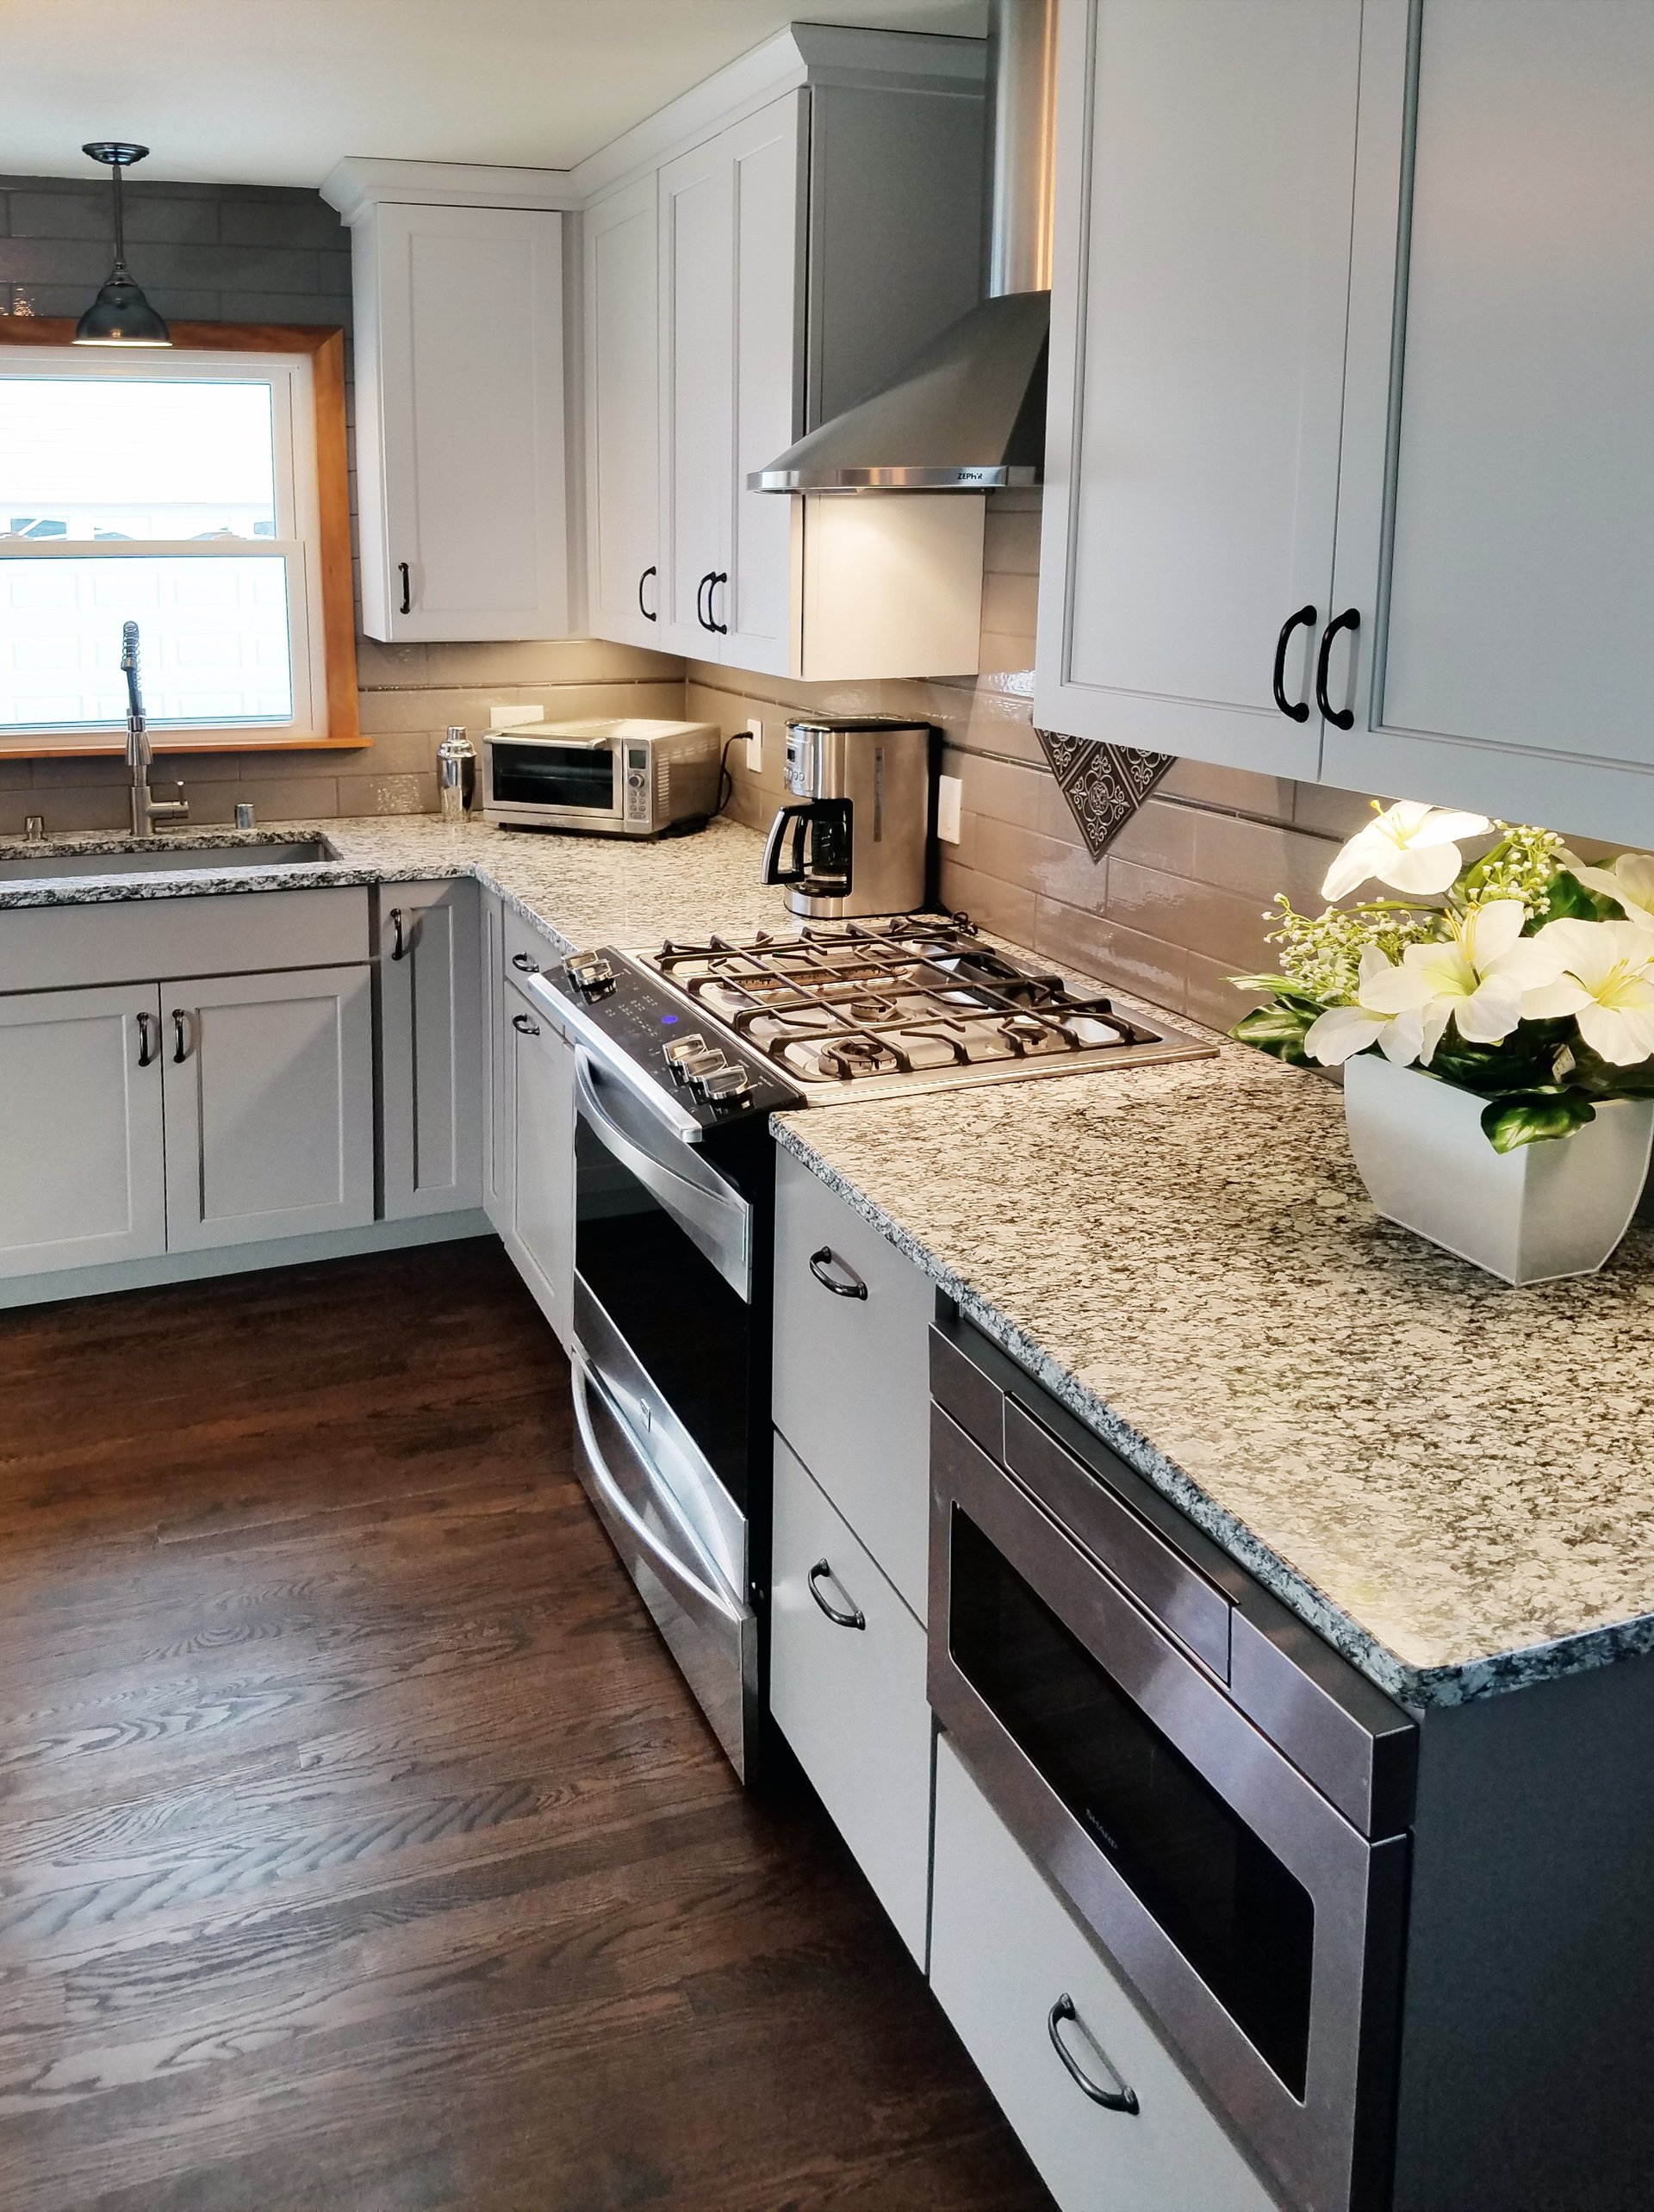 l-shape kitchen design, grey and white kitchen granite, microwave undercounter, stainless steel hood,